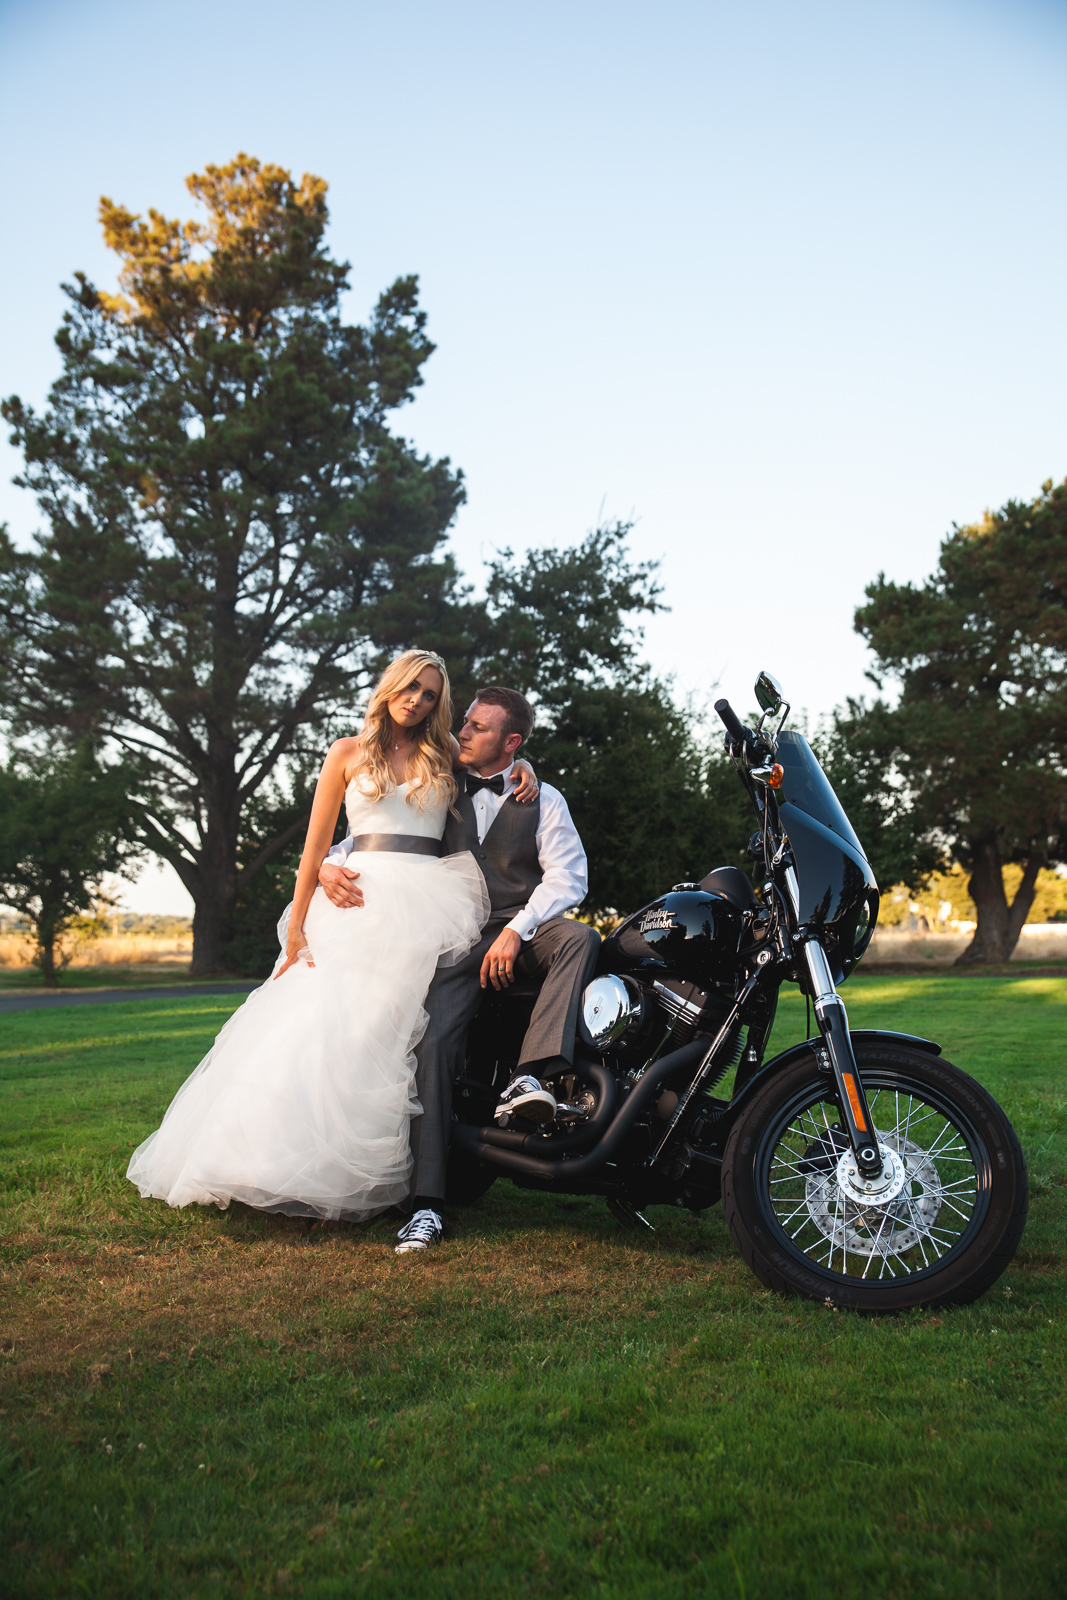 harley davidson wedding.jpg